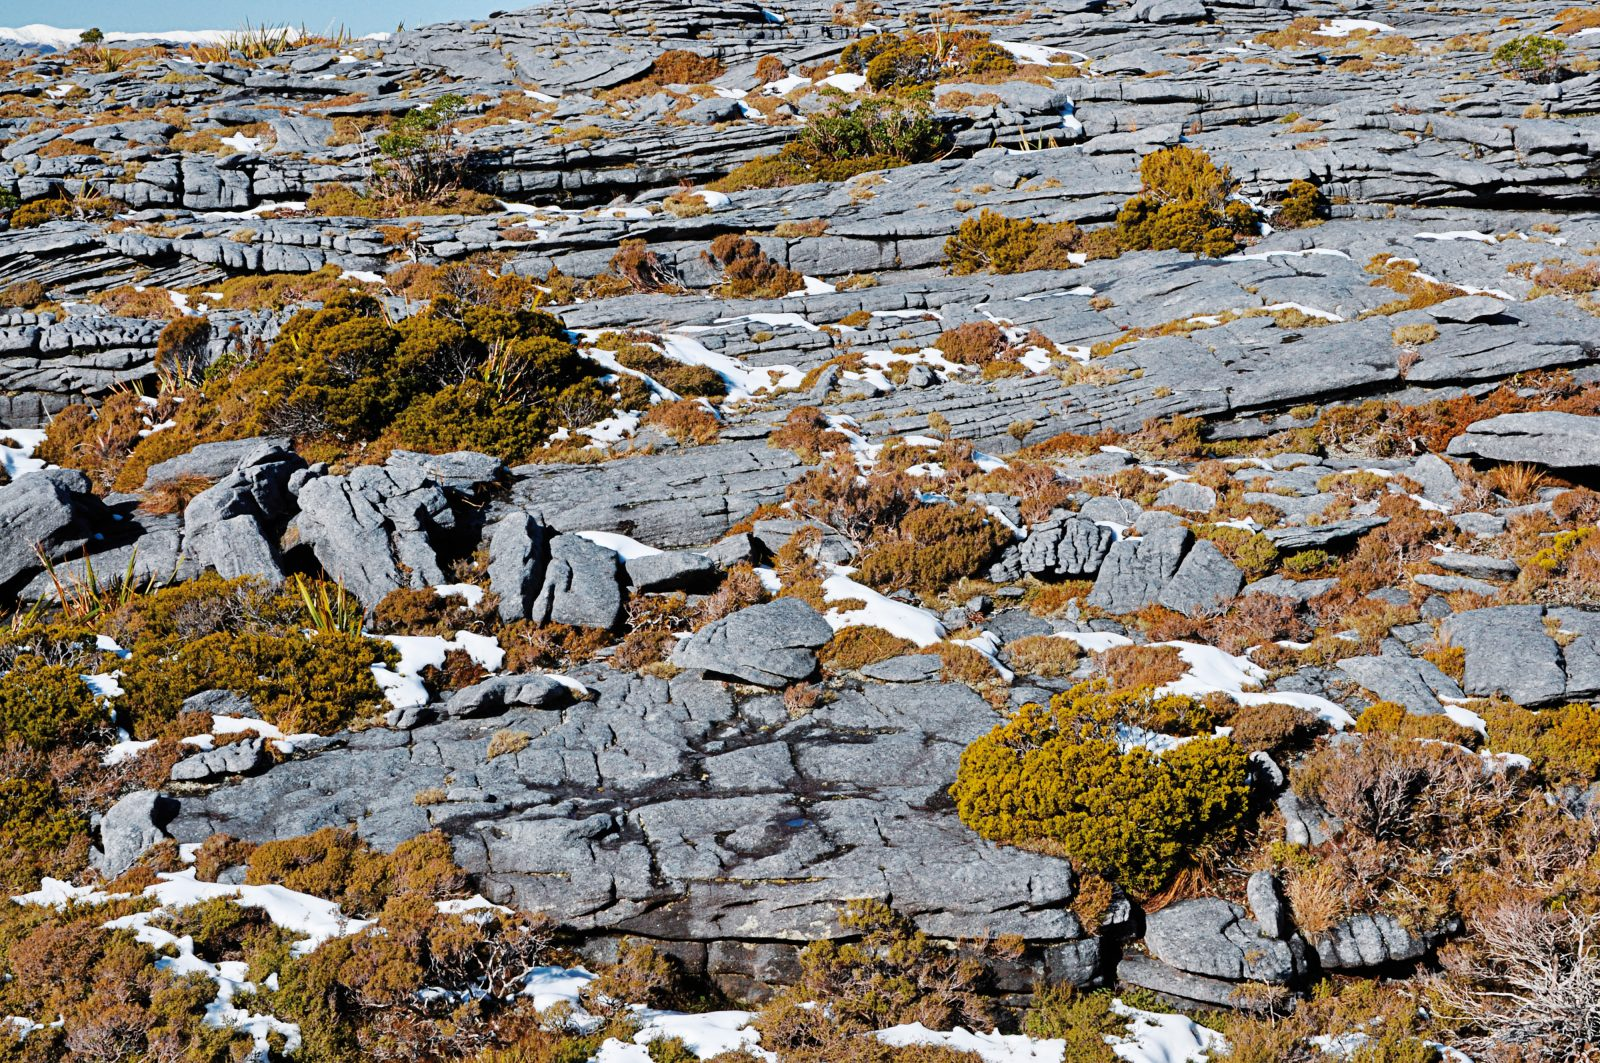 Millions of years of weathering have scoured soft sediments from the Denniston Plateau, leaving bare sandstone pavements and scant pockets of soil where vegetation can gain a foothold. Winter snow adds to the rigours of wind and rain that plants and animals endure in this challenging environment.